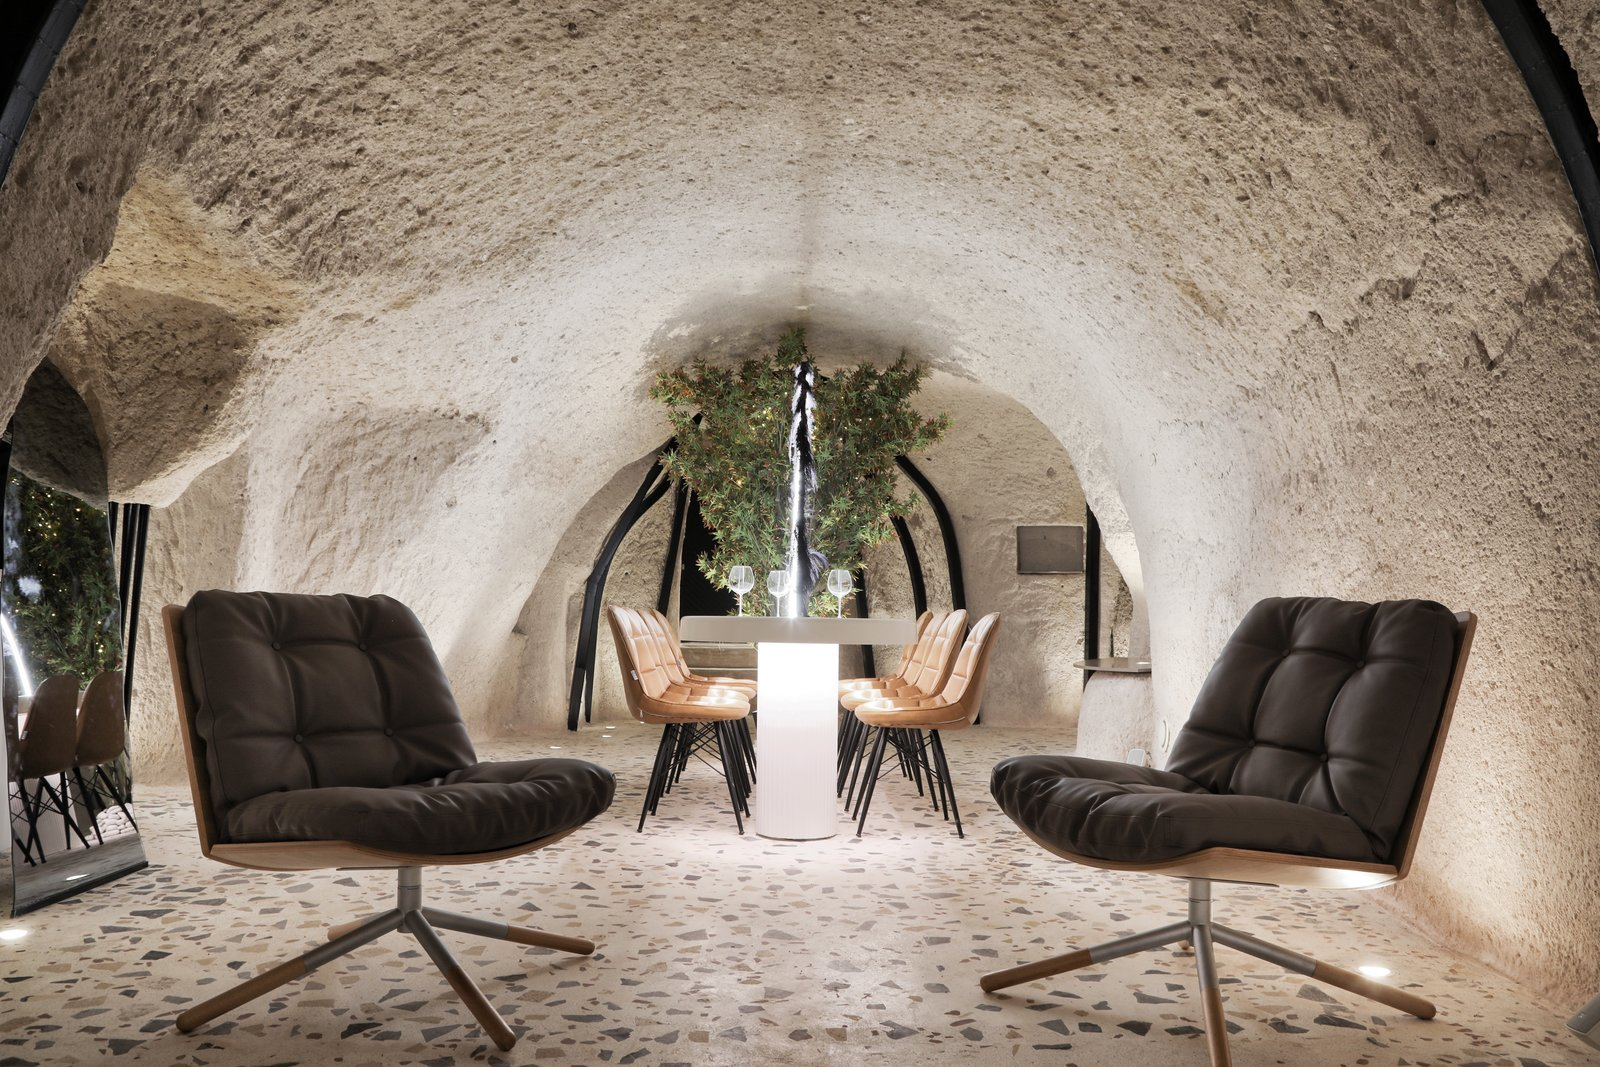 Dining Room, Chair, Table, Floor Lighting, Accent Lighting, and Terrazzo Floor  Photo 1 of 13 in A Primal Space Gets a Swanky, Modern Twist in This Turkish Cave Loft